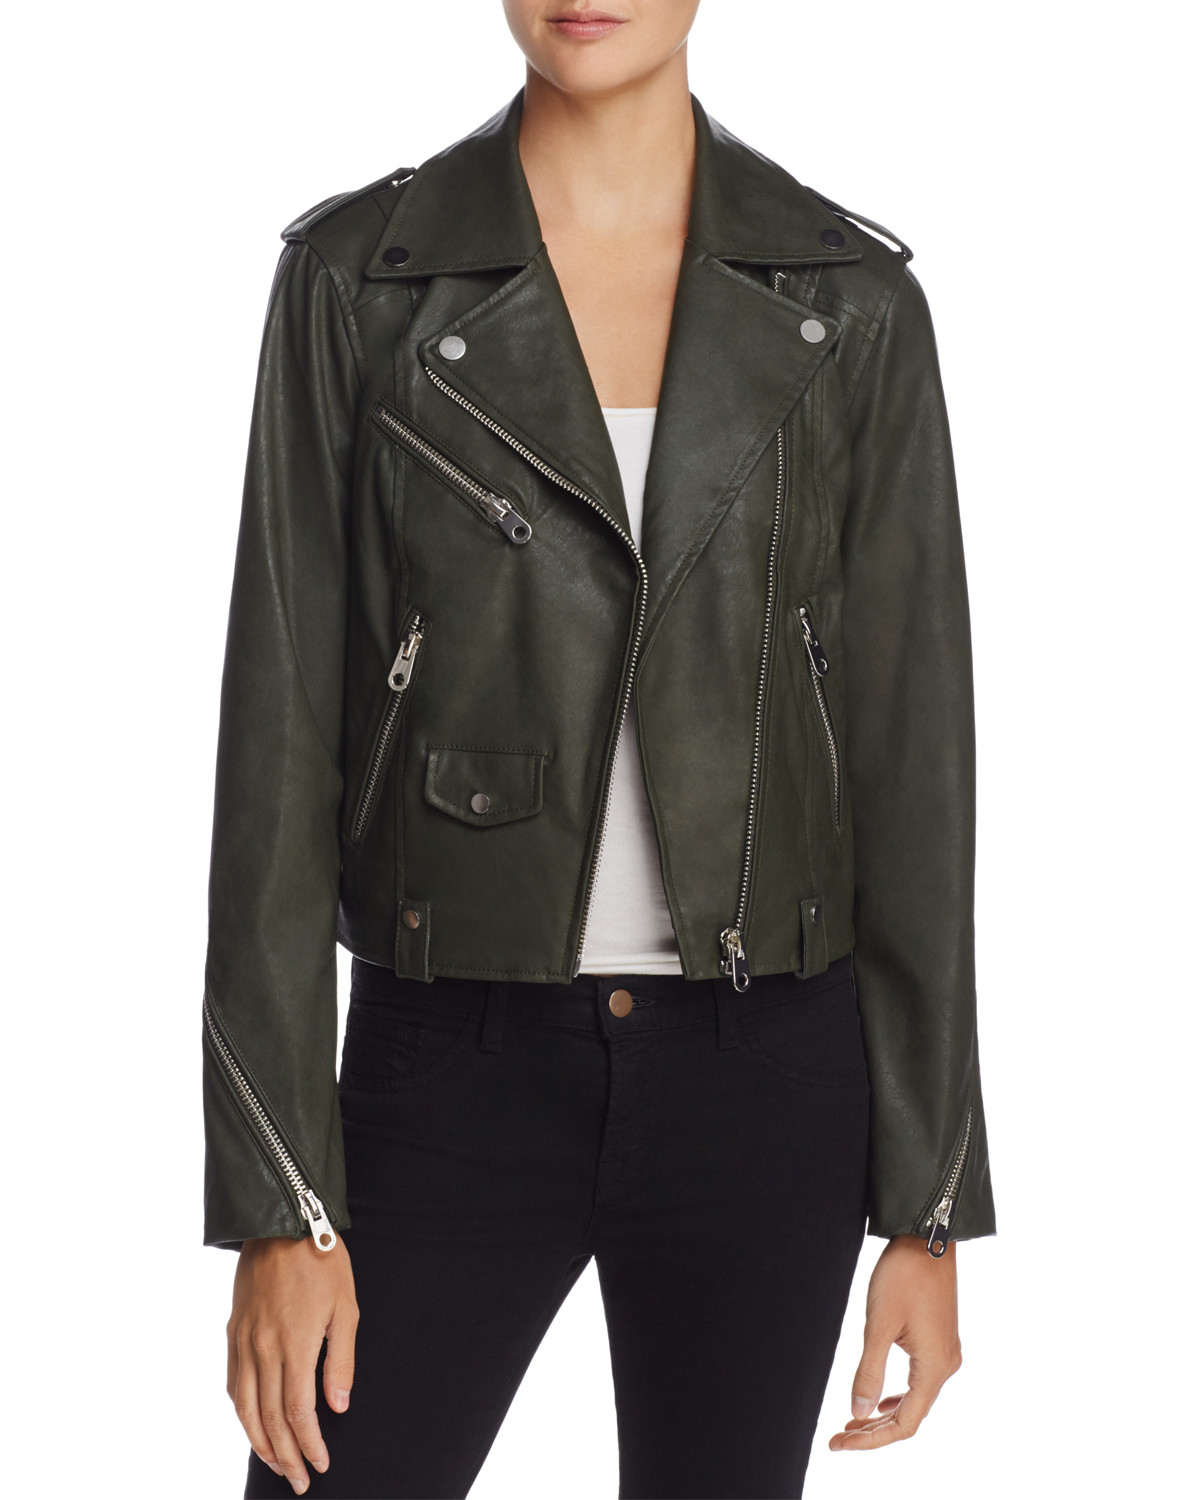 AQUA Faux Leather Moto Jacket from Bloomingdale's // Price: Org. $128, Sale. $89.50 // (Photo courtesy: Bloomingdale's)<p></p>